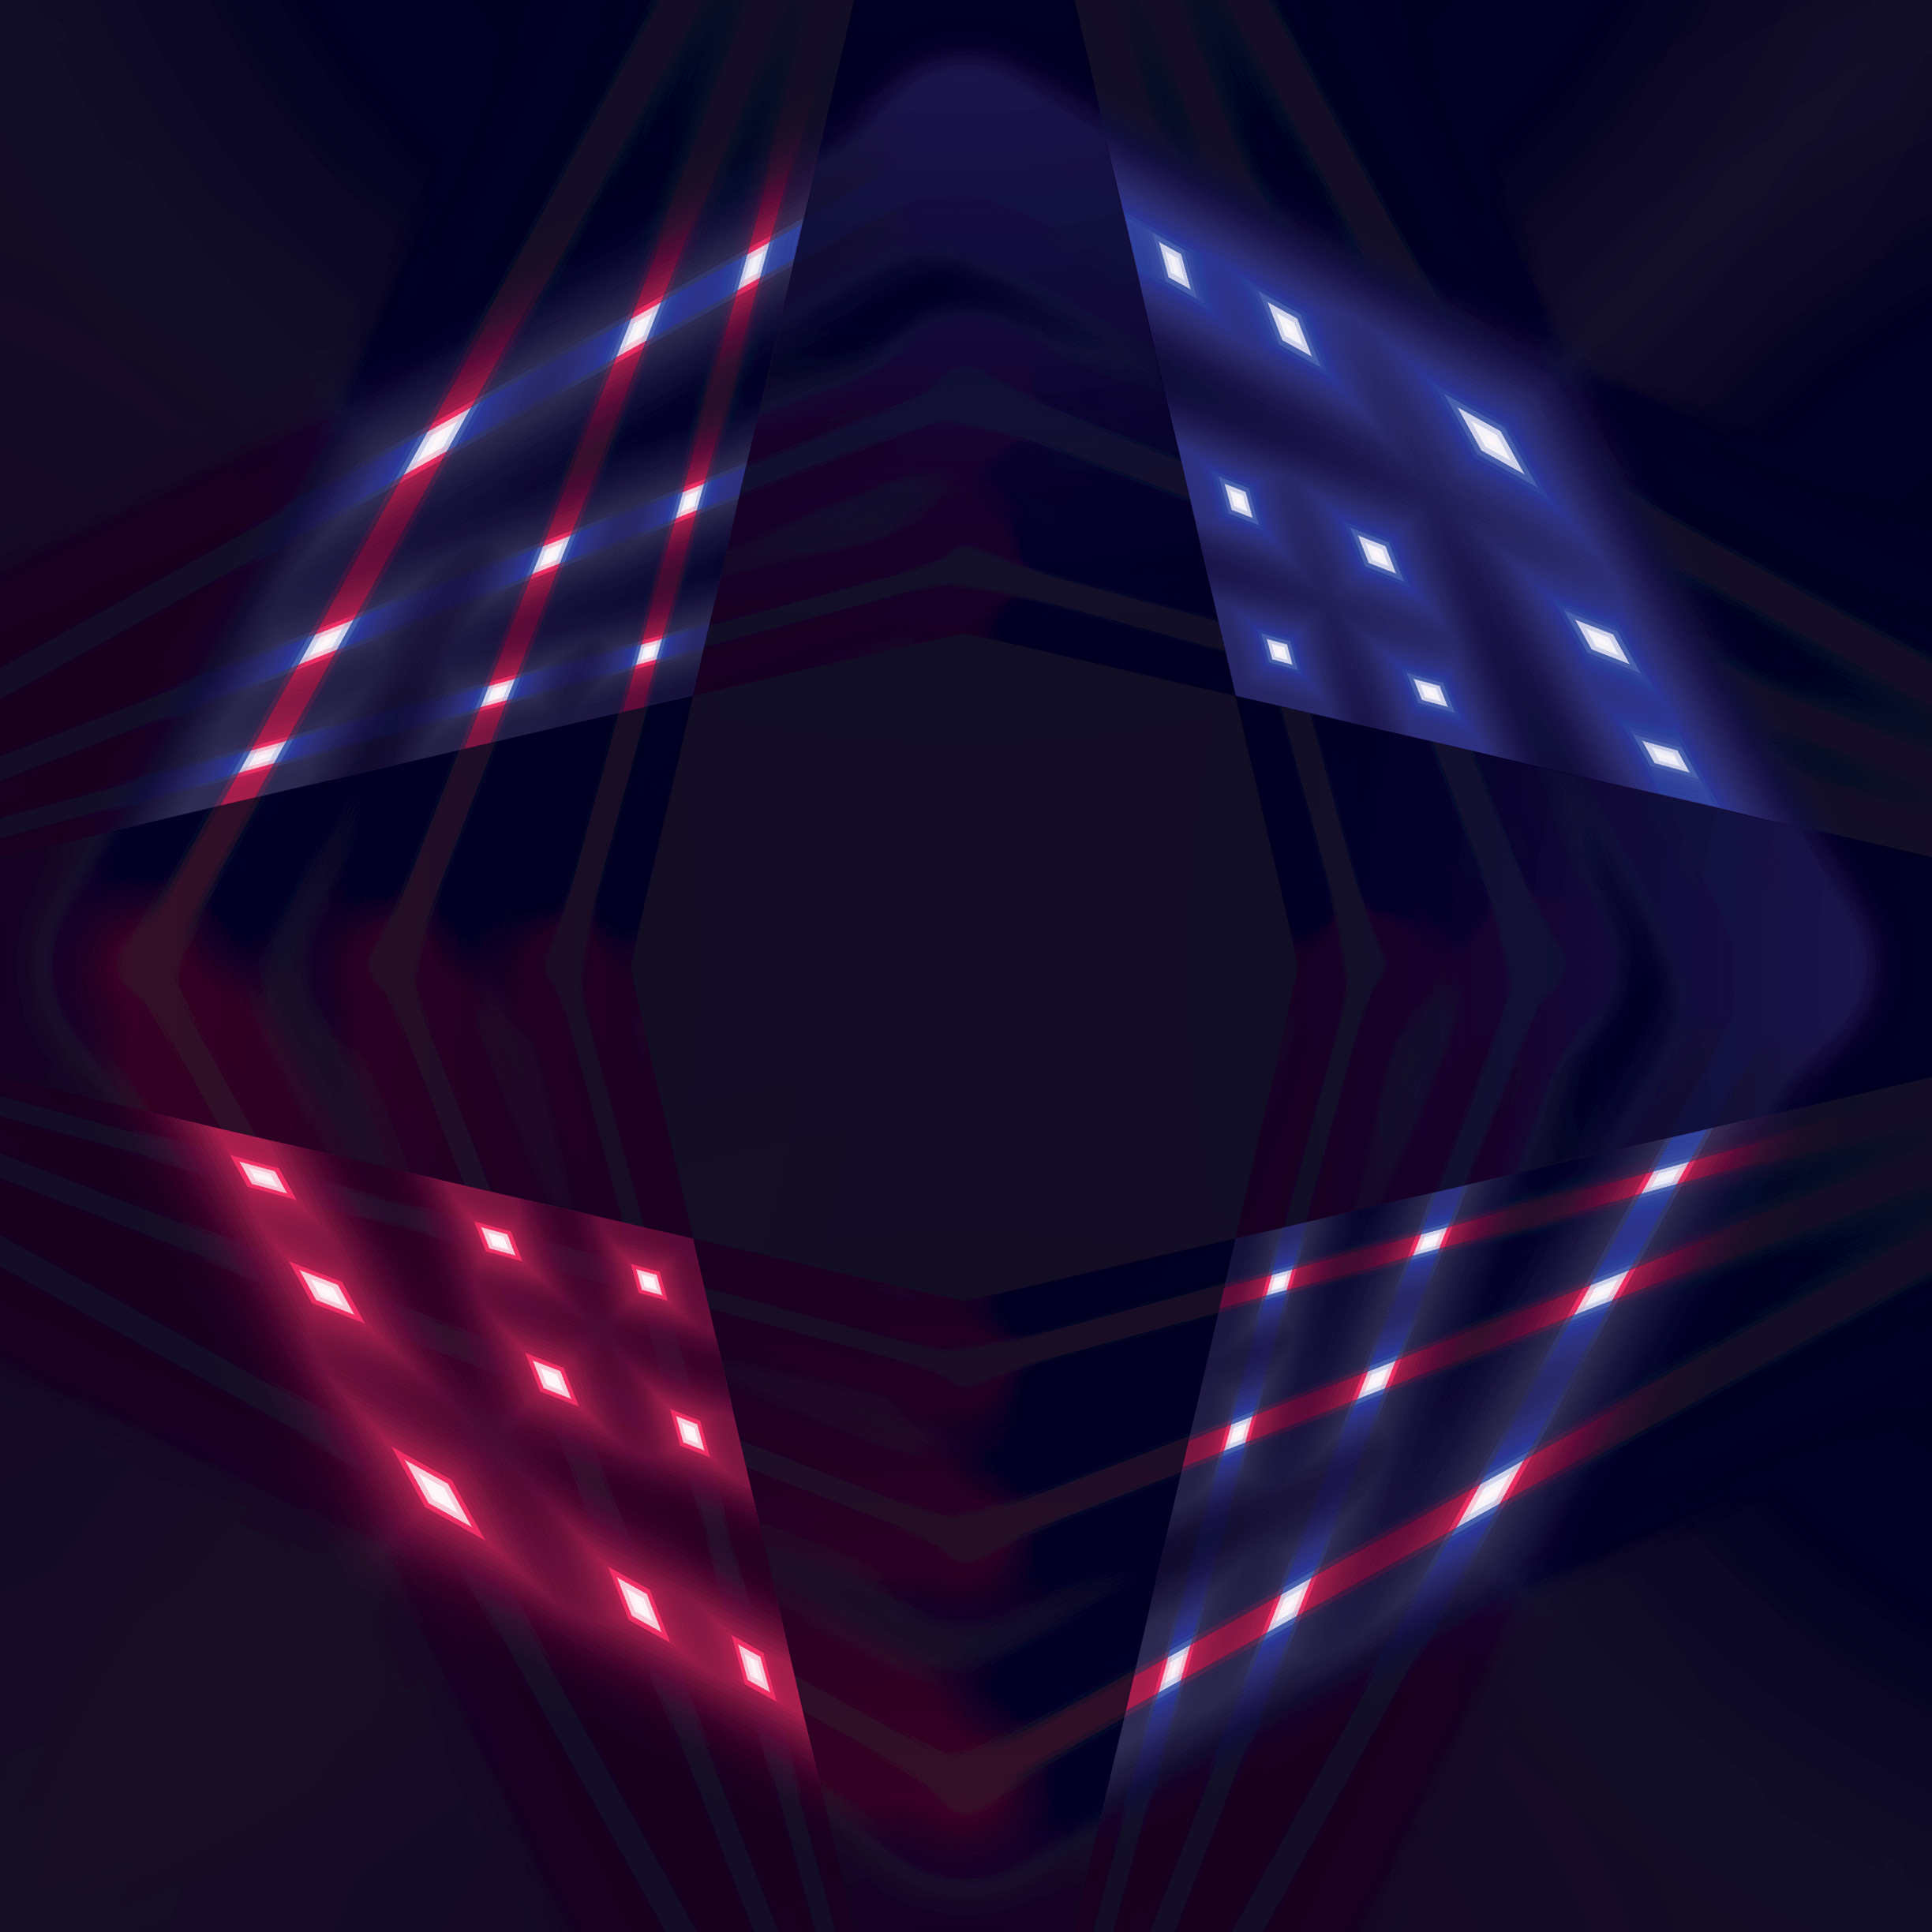 Led red and blue checker background 2448 x 2448